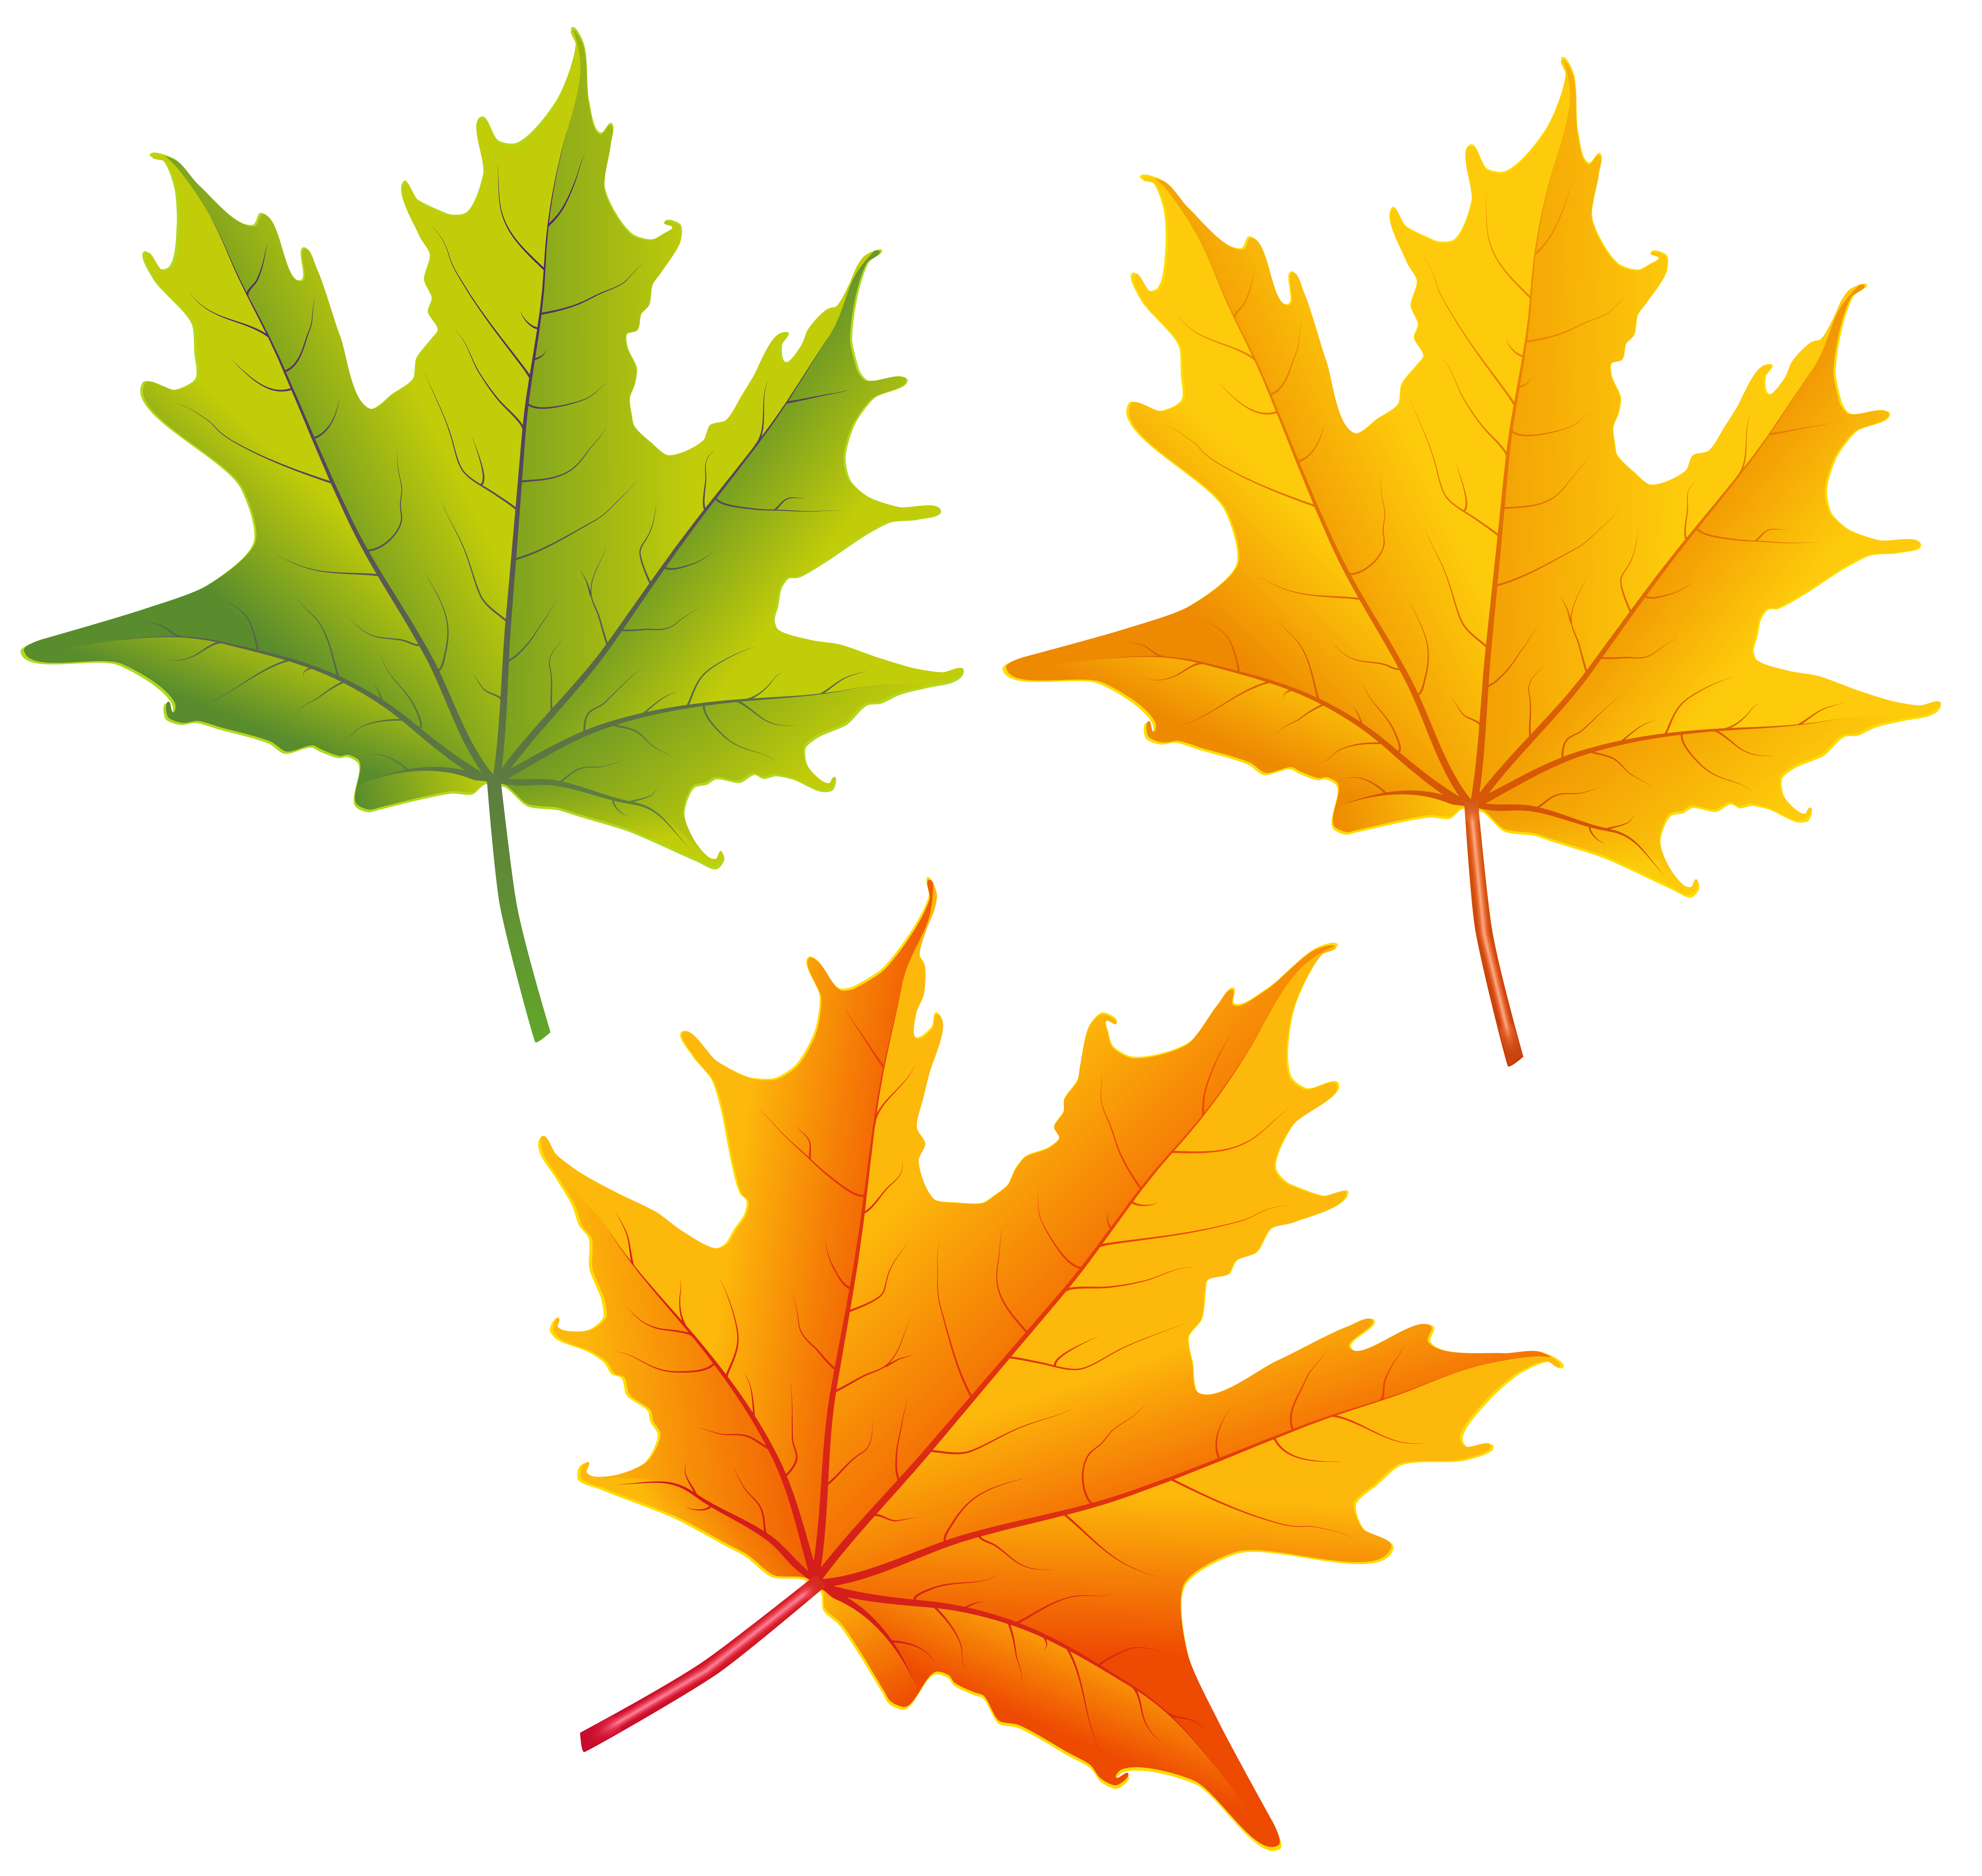 Free clipart autumn leaves jpg royalty free library Pile Of Leaves Clipart | Free download best Pile Of Leaves Clipart ... jpg royalty free library